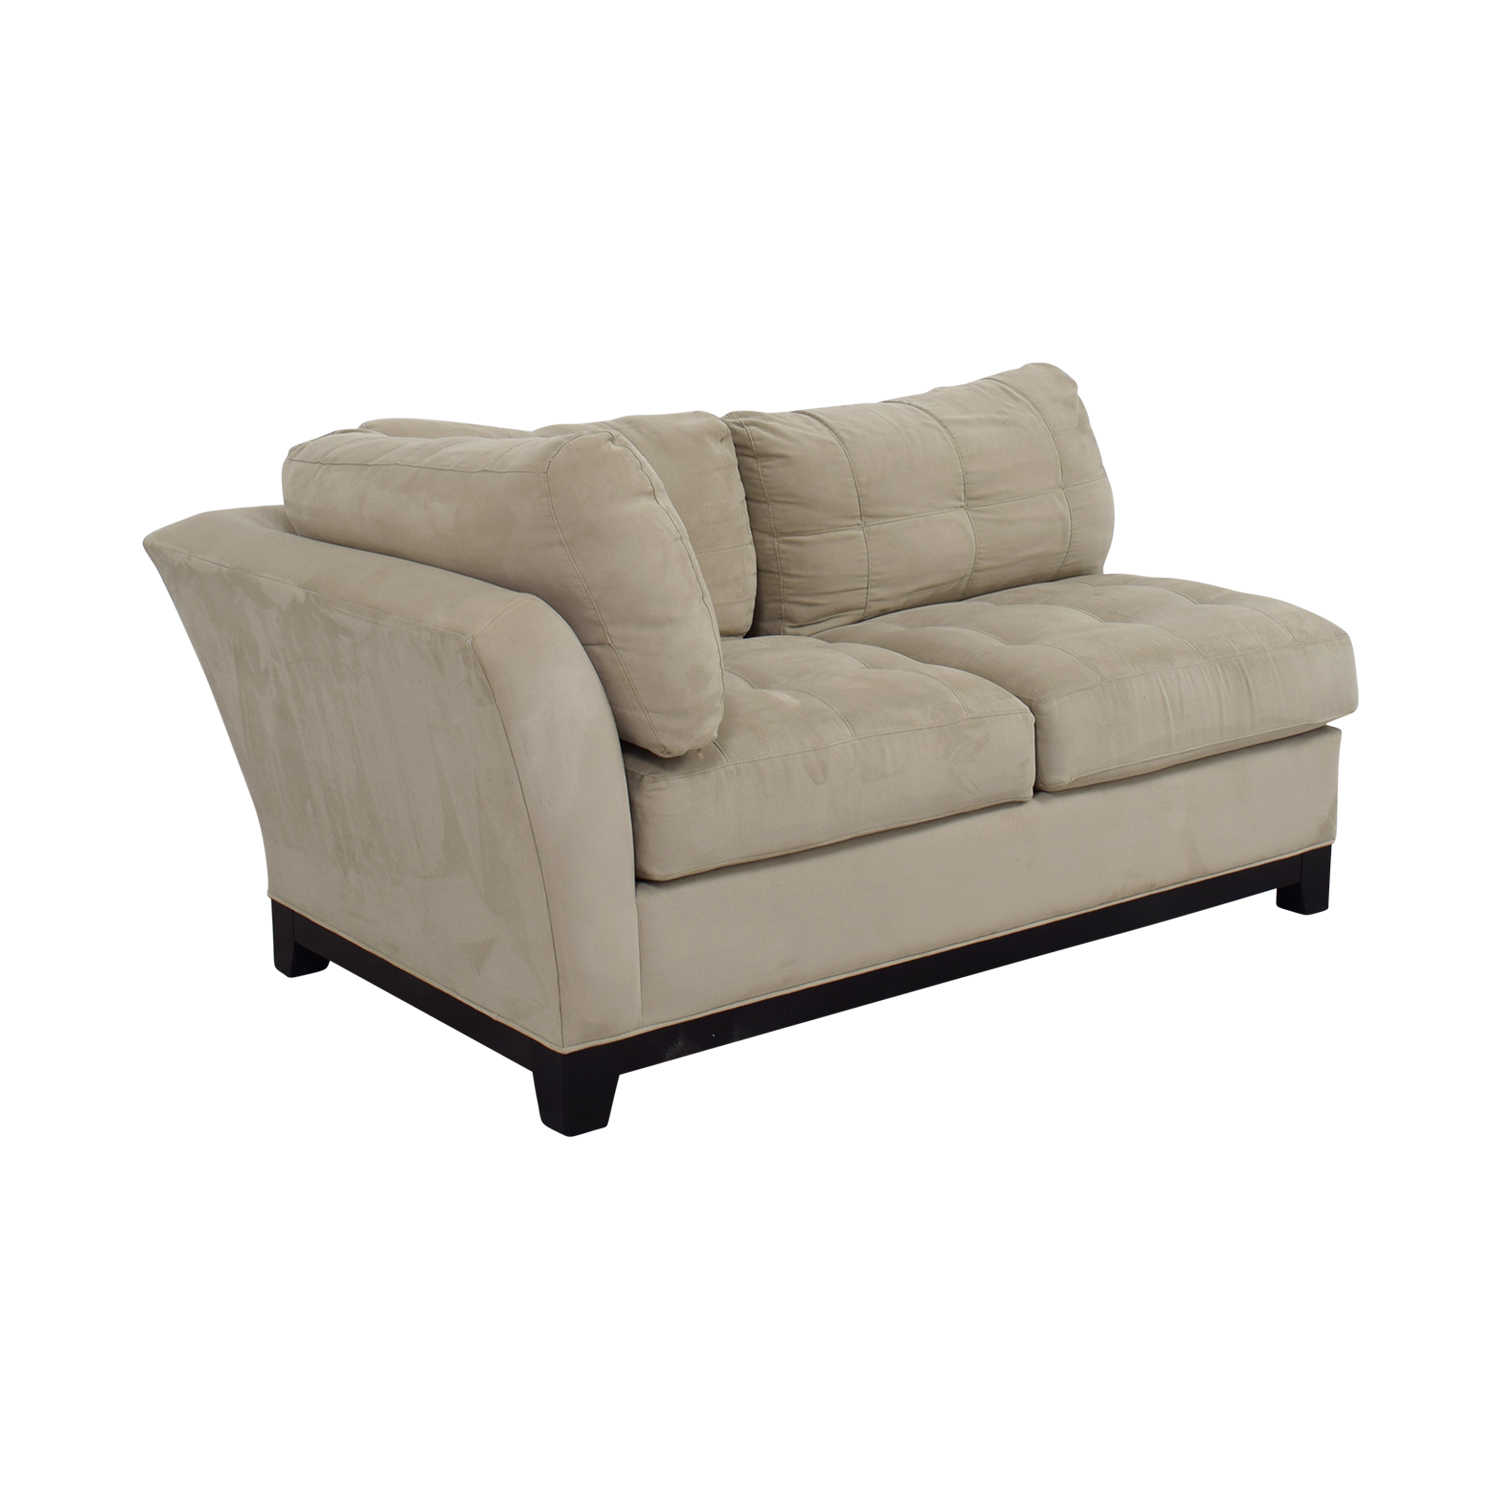 raymour and flanigan sofas 90 raymour amp flanigan raymour amp flanigan grey 30368